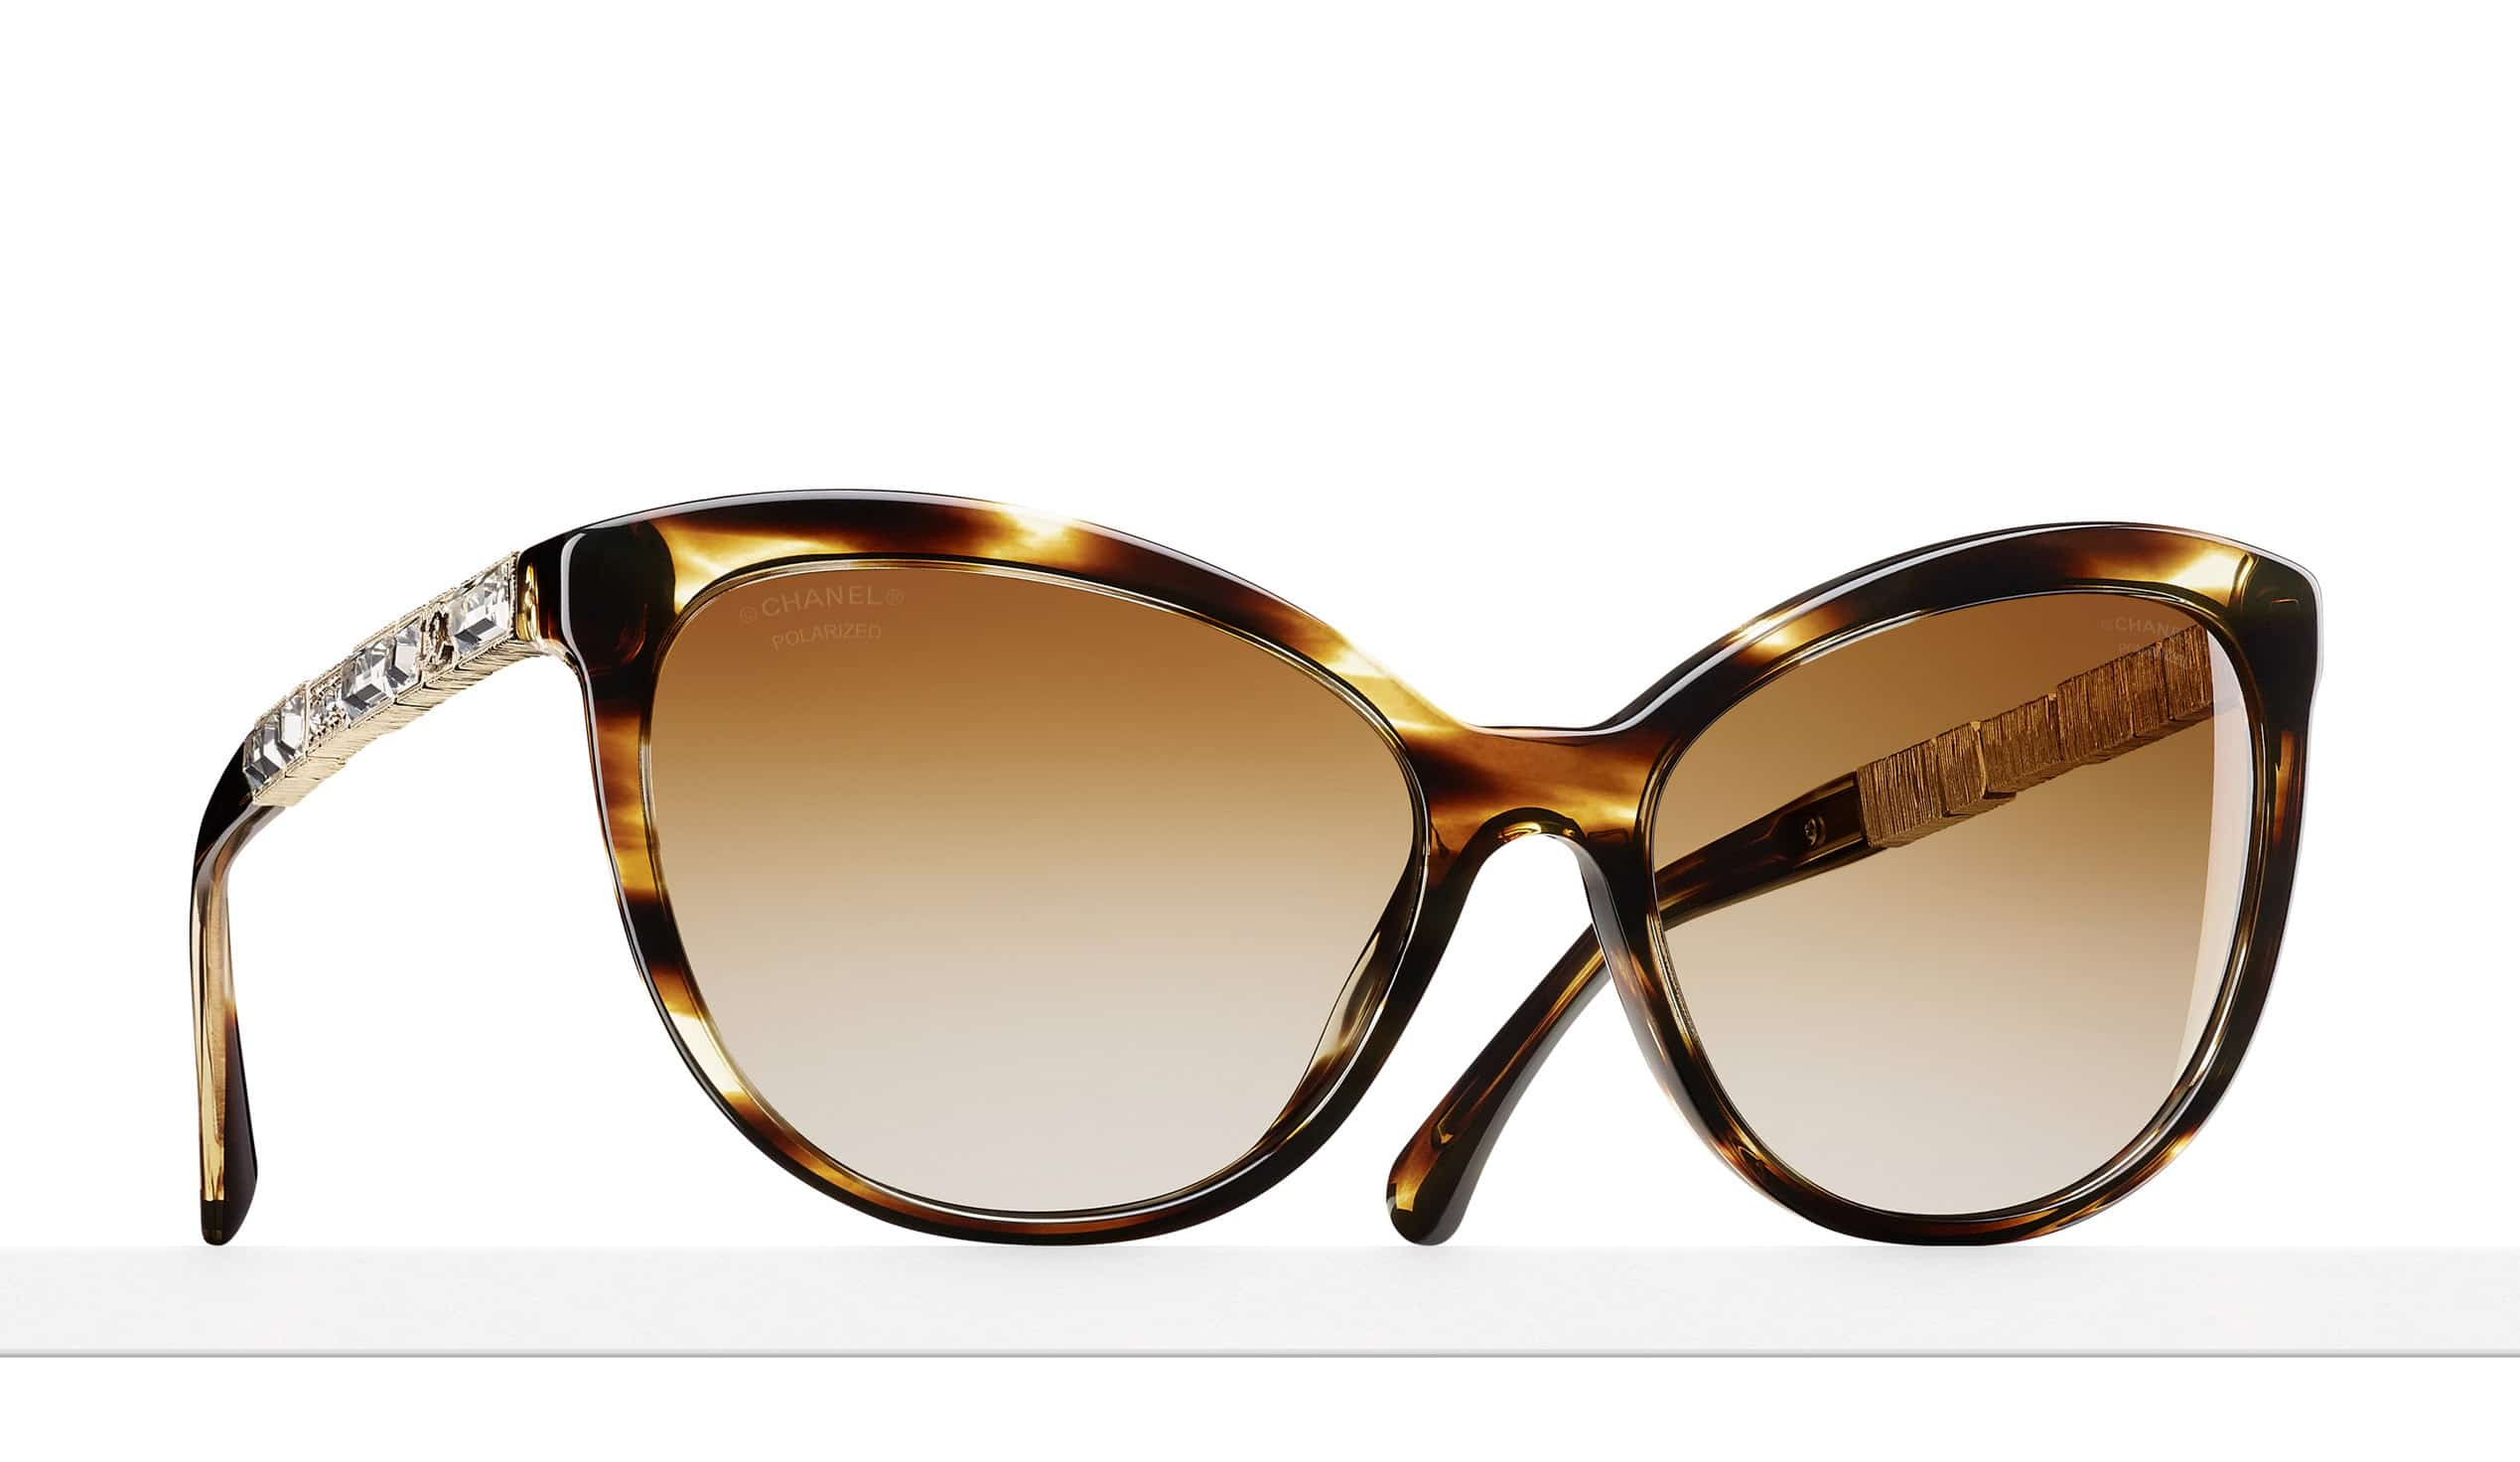 chanel-bijou-sunglasses-collection-2015-0